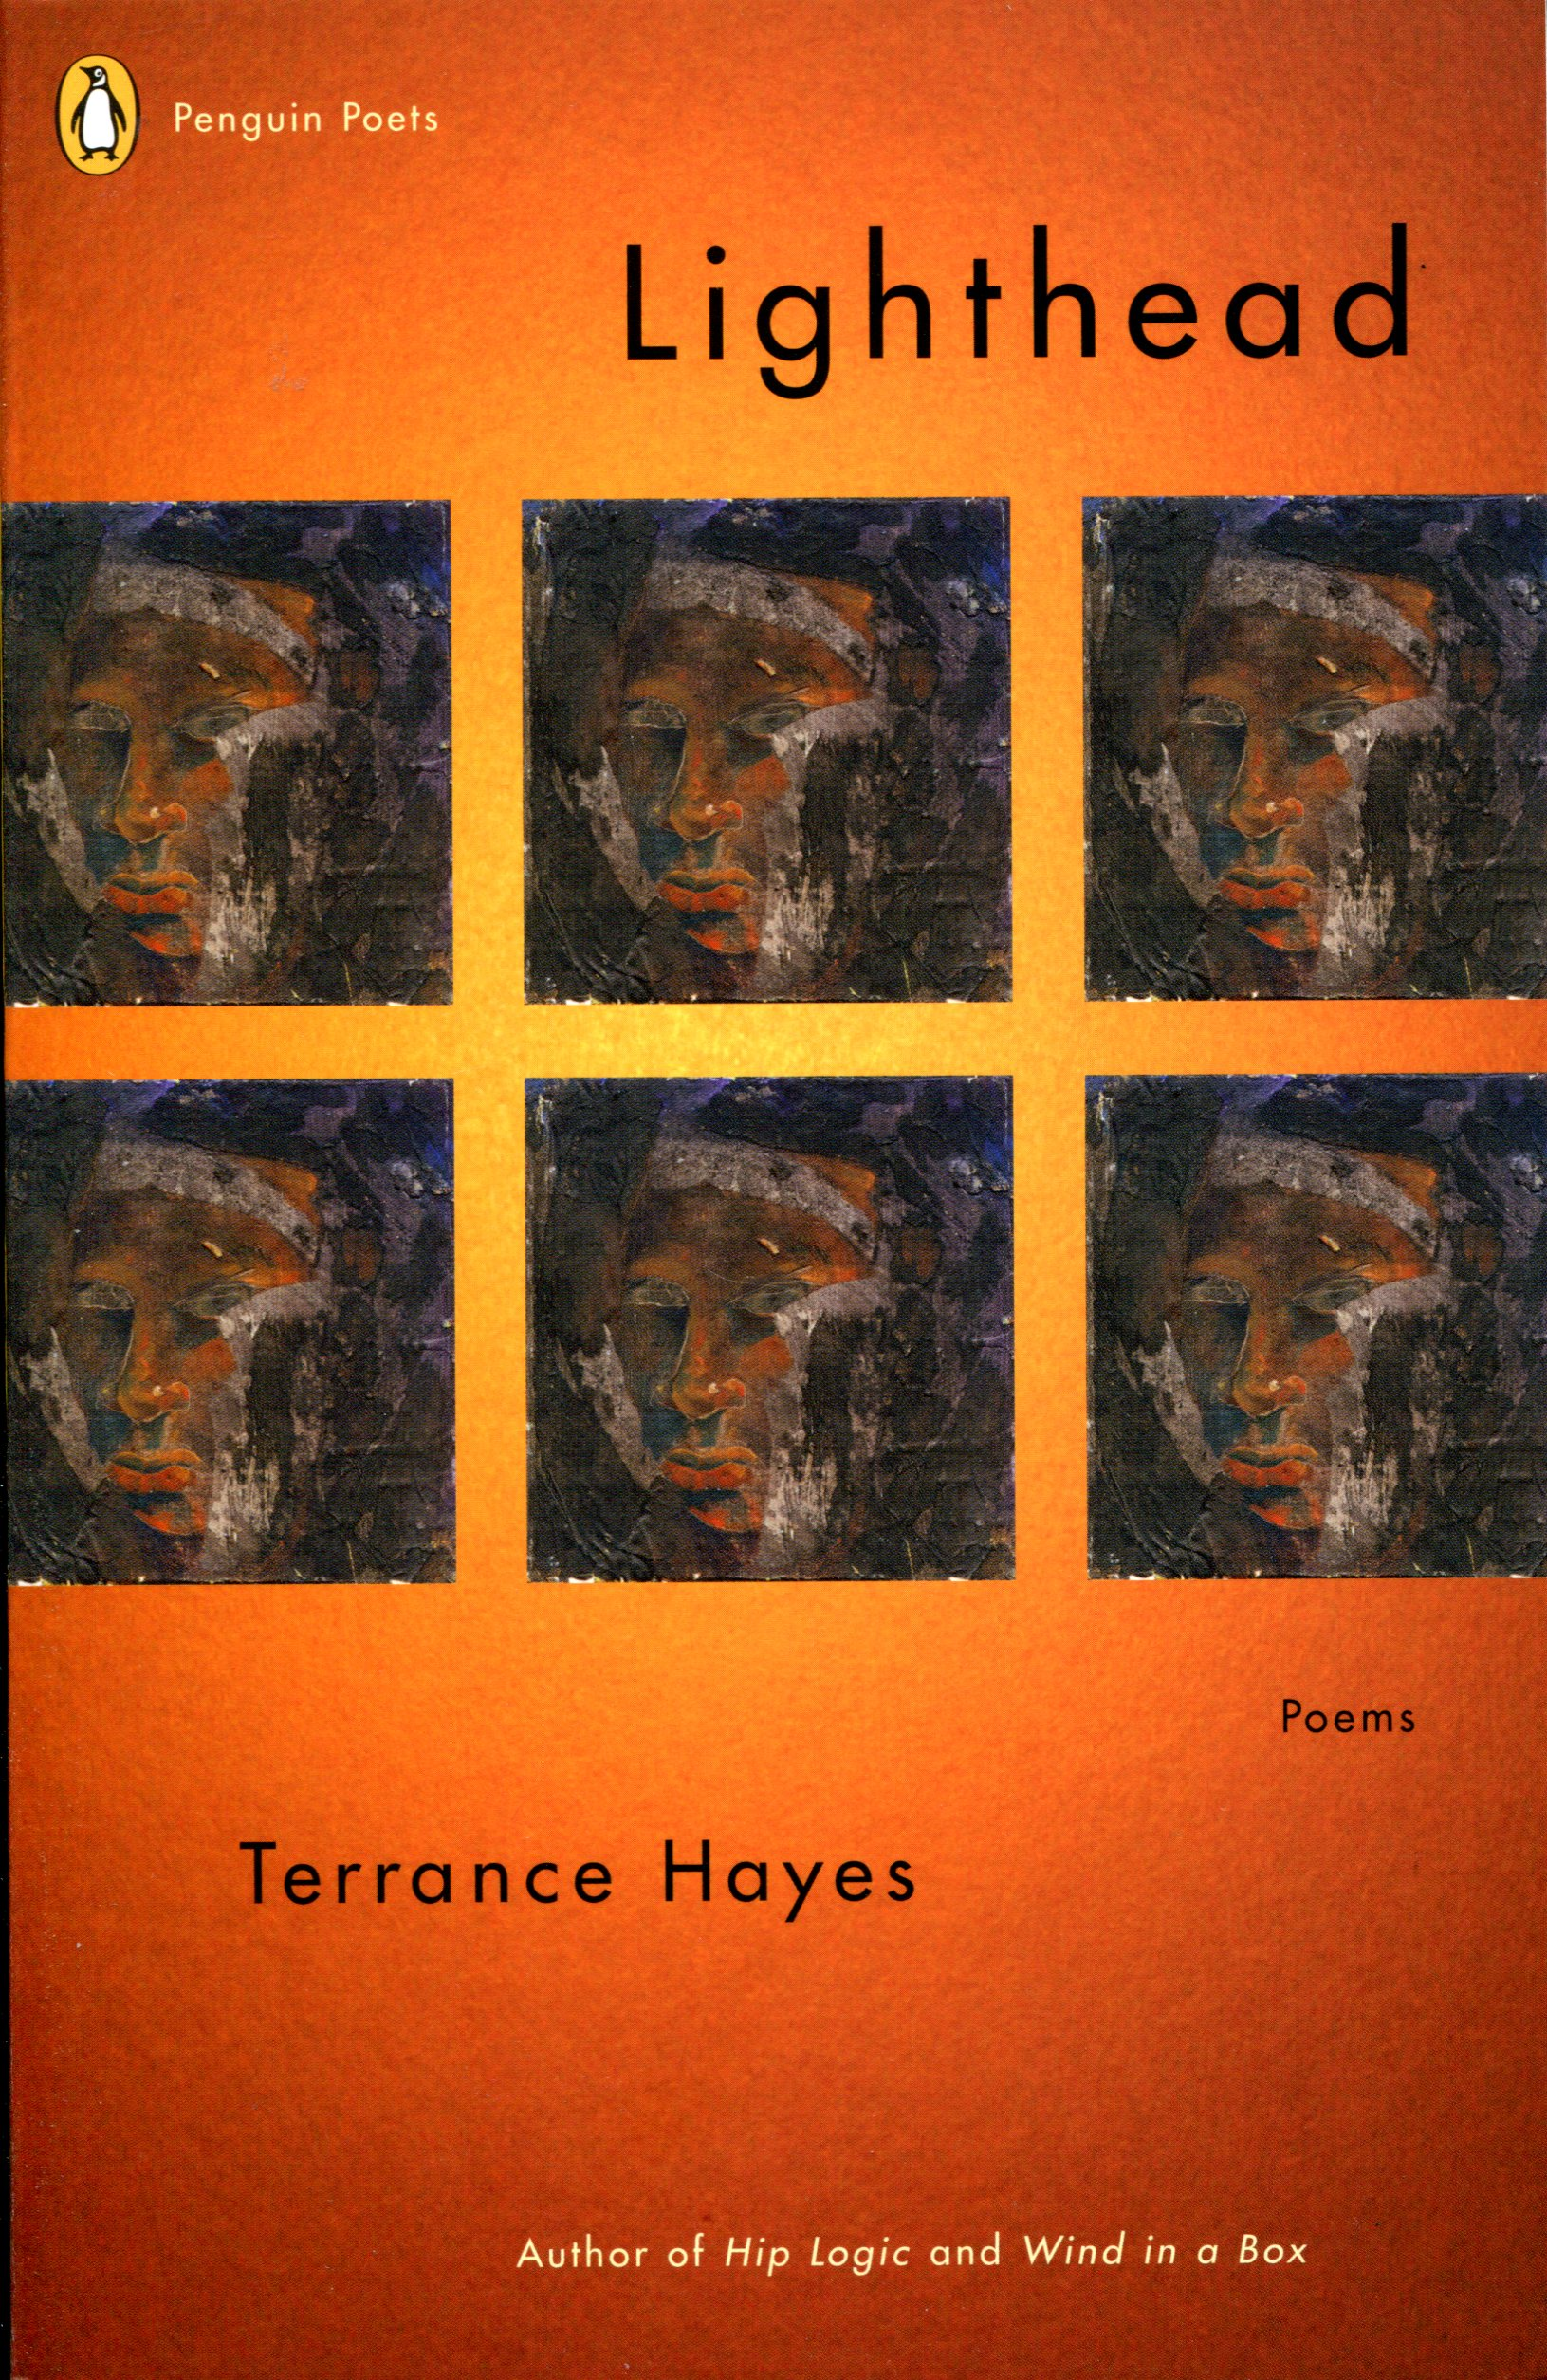 Lighthead by Terrance Hayes